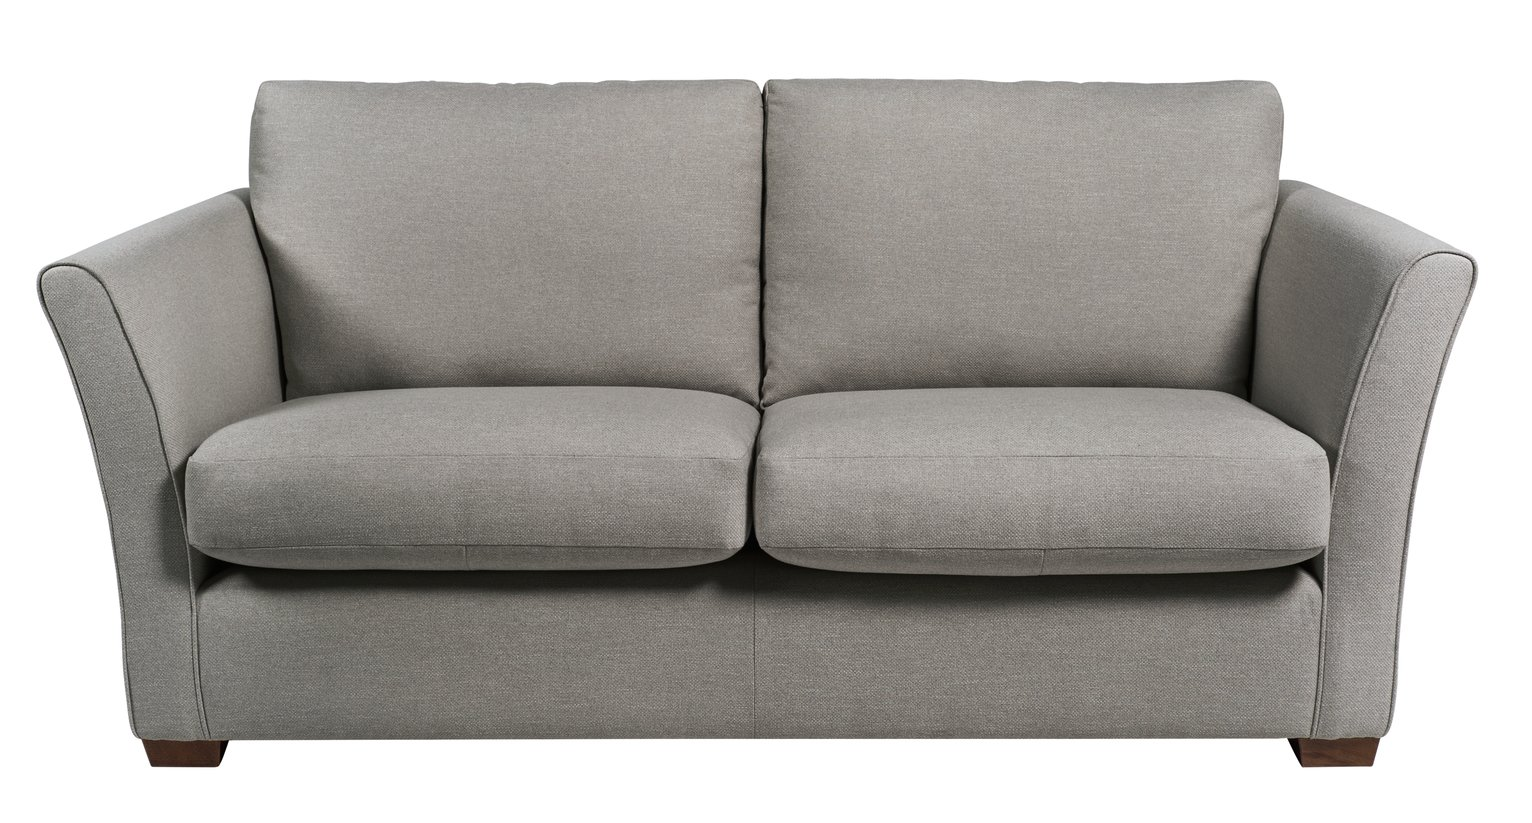 Argos Home Dawson 3 Seater Fabric Sofa - Grey